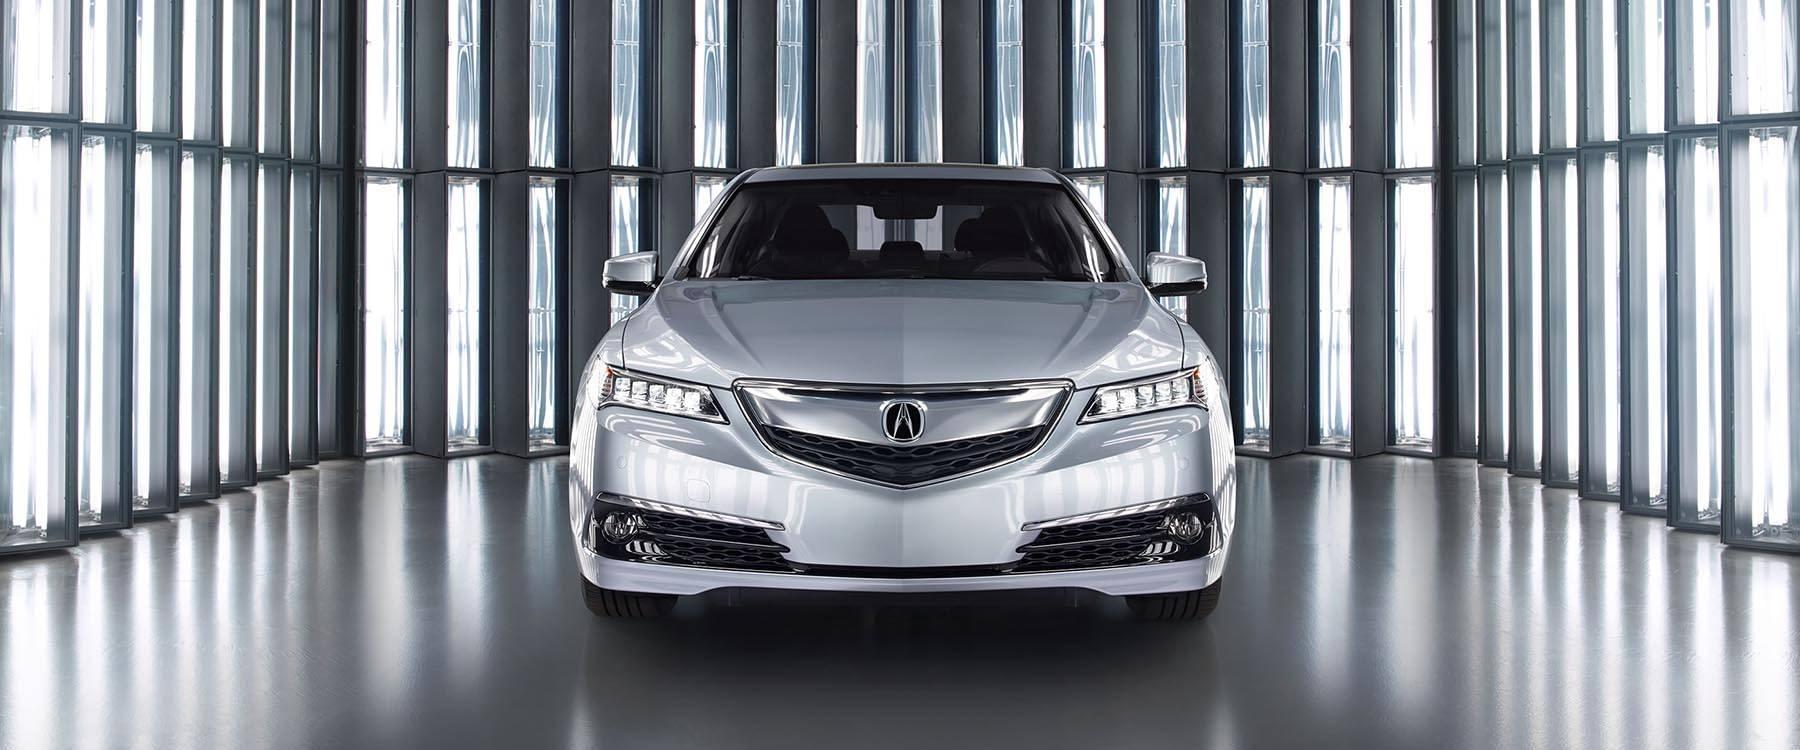 2017 Acura TLX Safety Features for Chicago Drivers